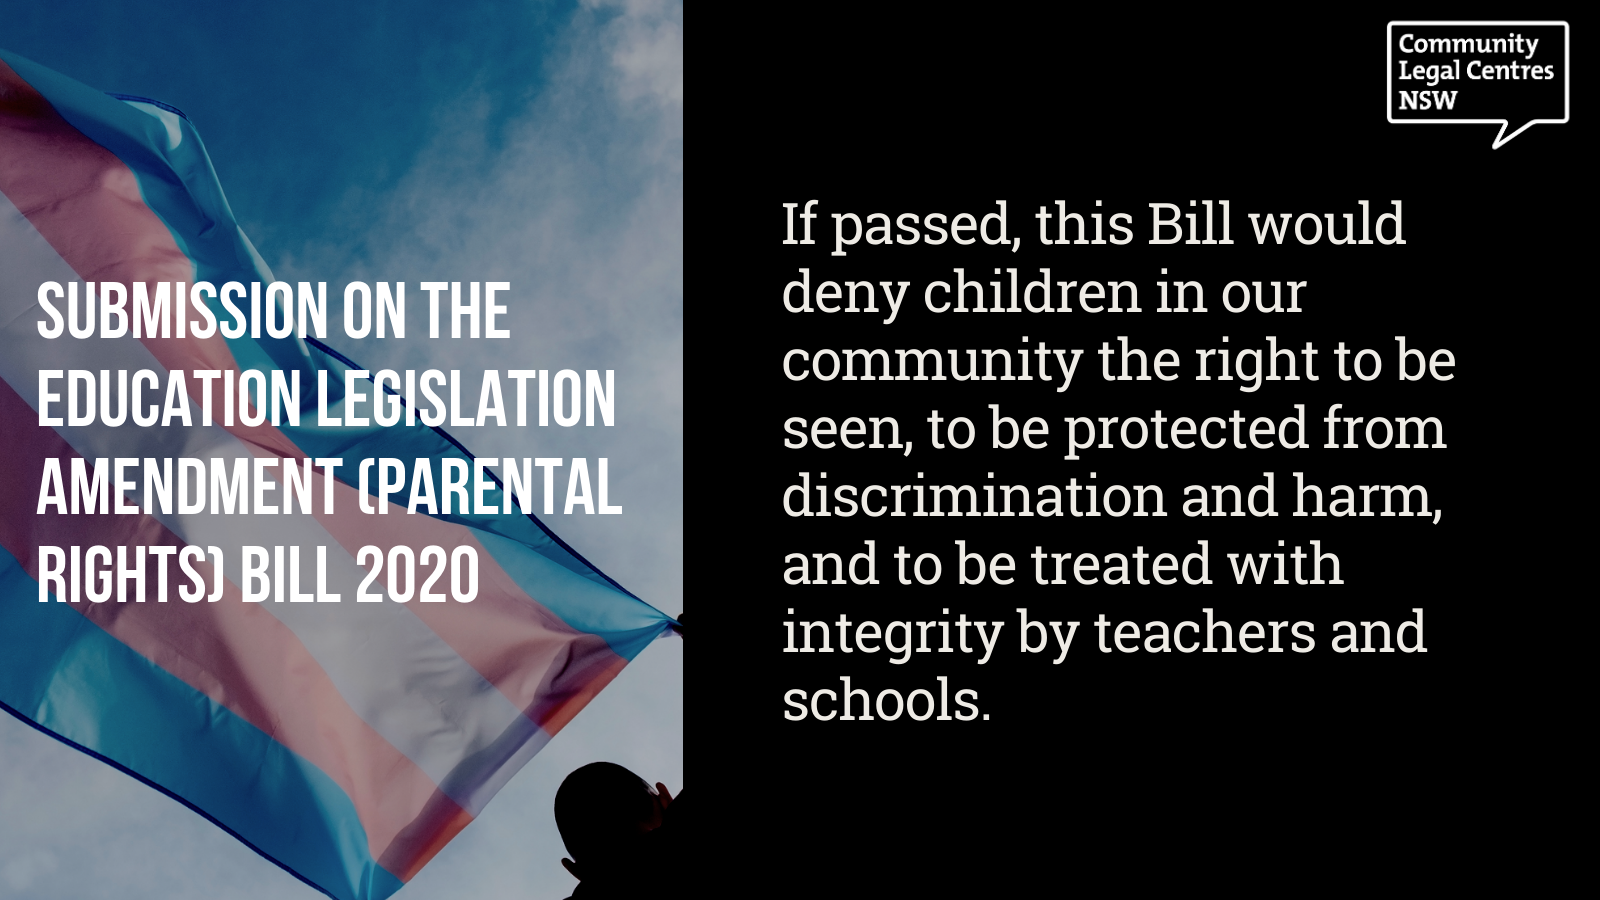 """If passed, this Bill would deny children in our community the right to be seen, to be protected from discrimination and harm, and to be treated with integrity by teachers and schools."""